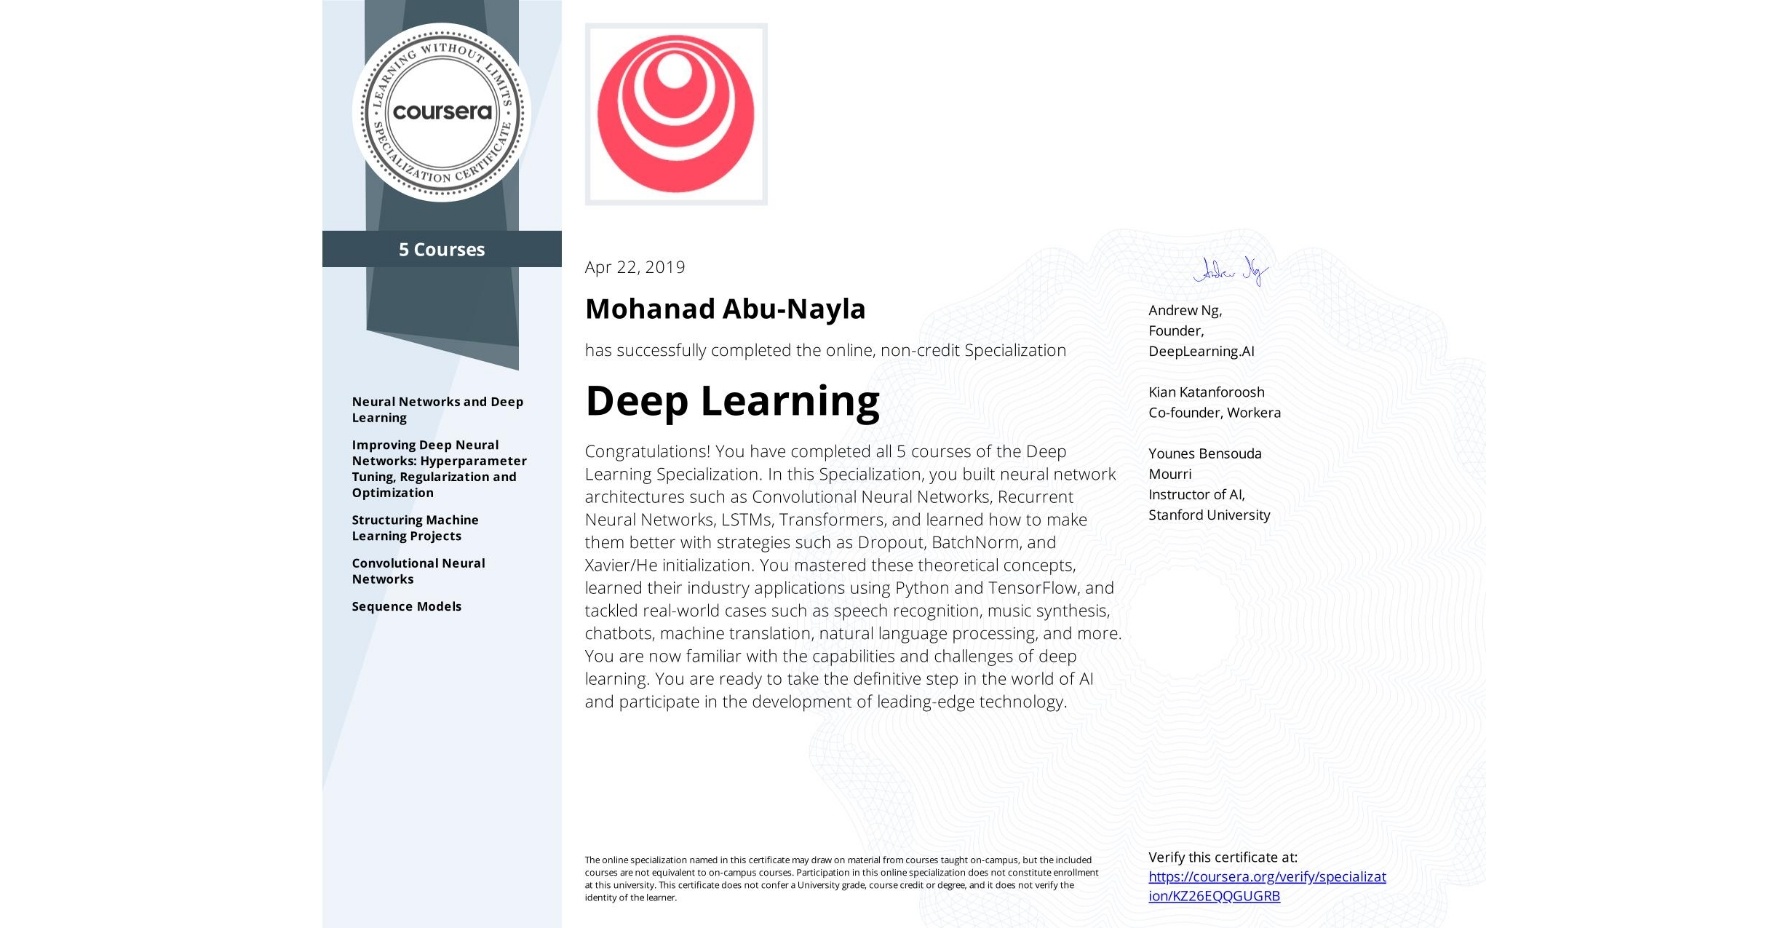 View certificate for Mohanad Abu-Nayla, Deep Learning, offered through Coursera. The Deep Learning Specialization is designed to prepare learners to participate in the development of cutting-edge AI technology, and to understand the capability, the challenges, and the consequences of the rise of deep learning. Through five interconnected courses, learners develop a profound knowledge of the hottest AI algorithms, mastering deep learning from its foundations (neural networks) to its industry applications (Computer Vision, Natural Language Processing, Speech Recognition, etc.).